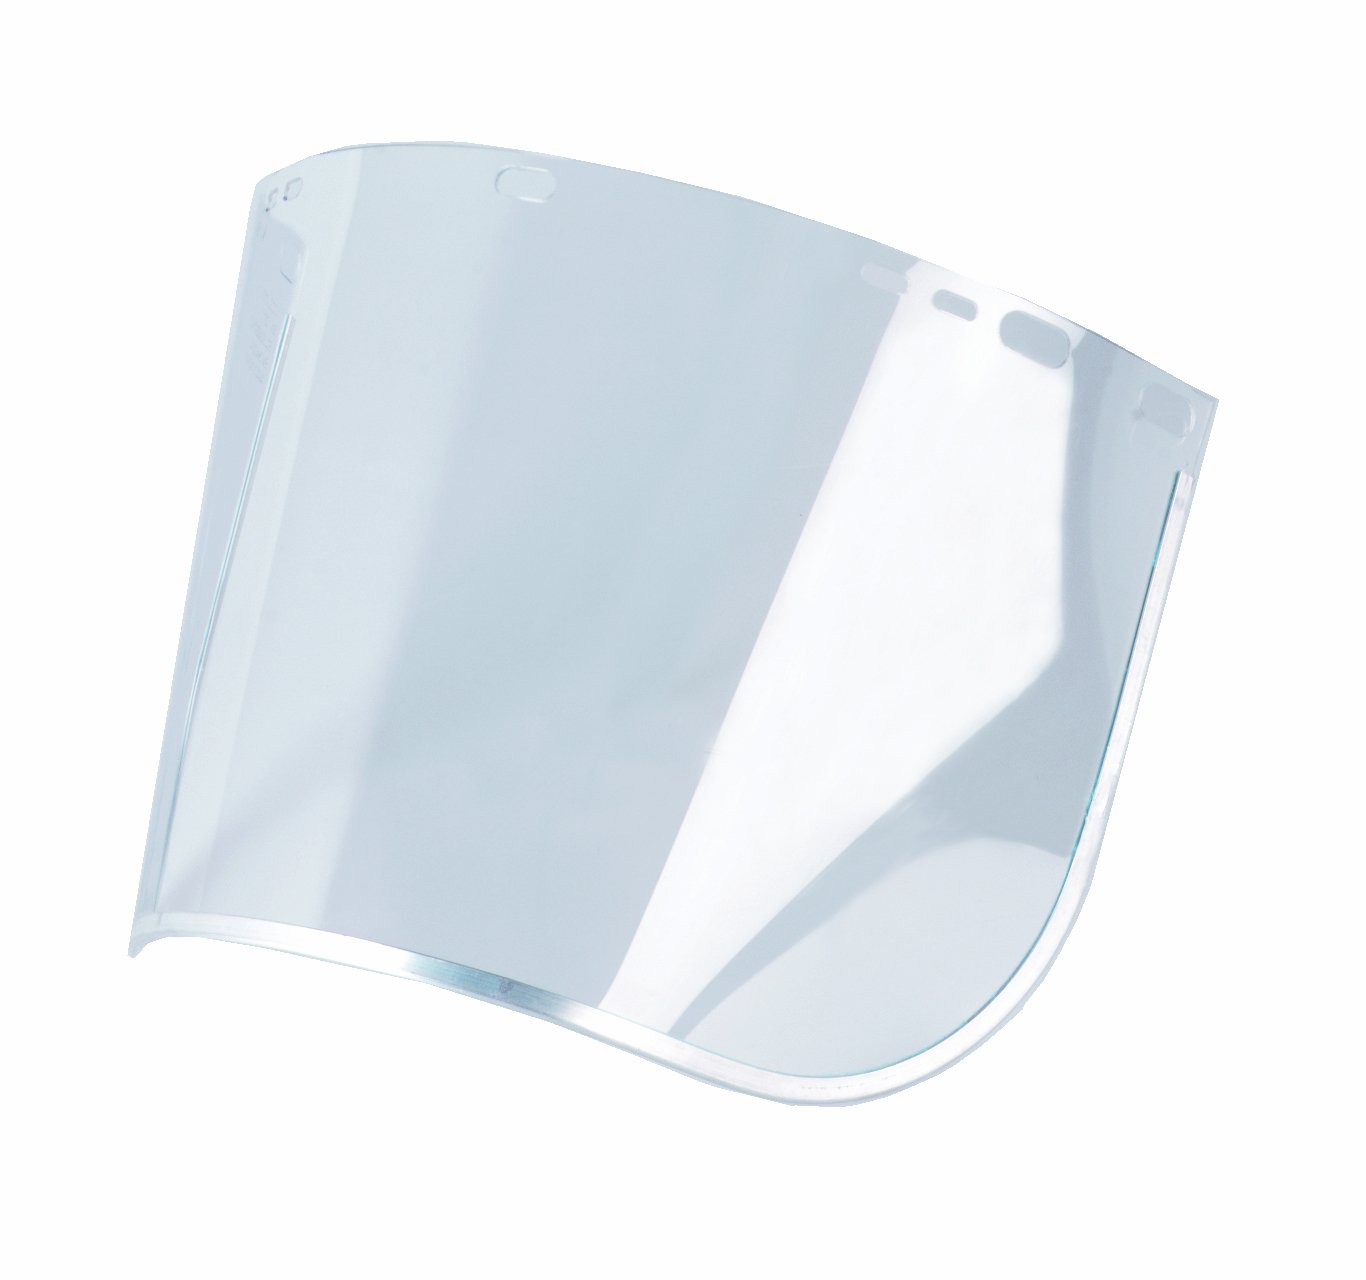 Sellstrom Replacement Window Max 56% OFF for 301 Univeral Max 89% OFF Series Patt Hole